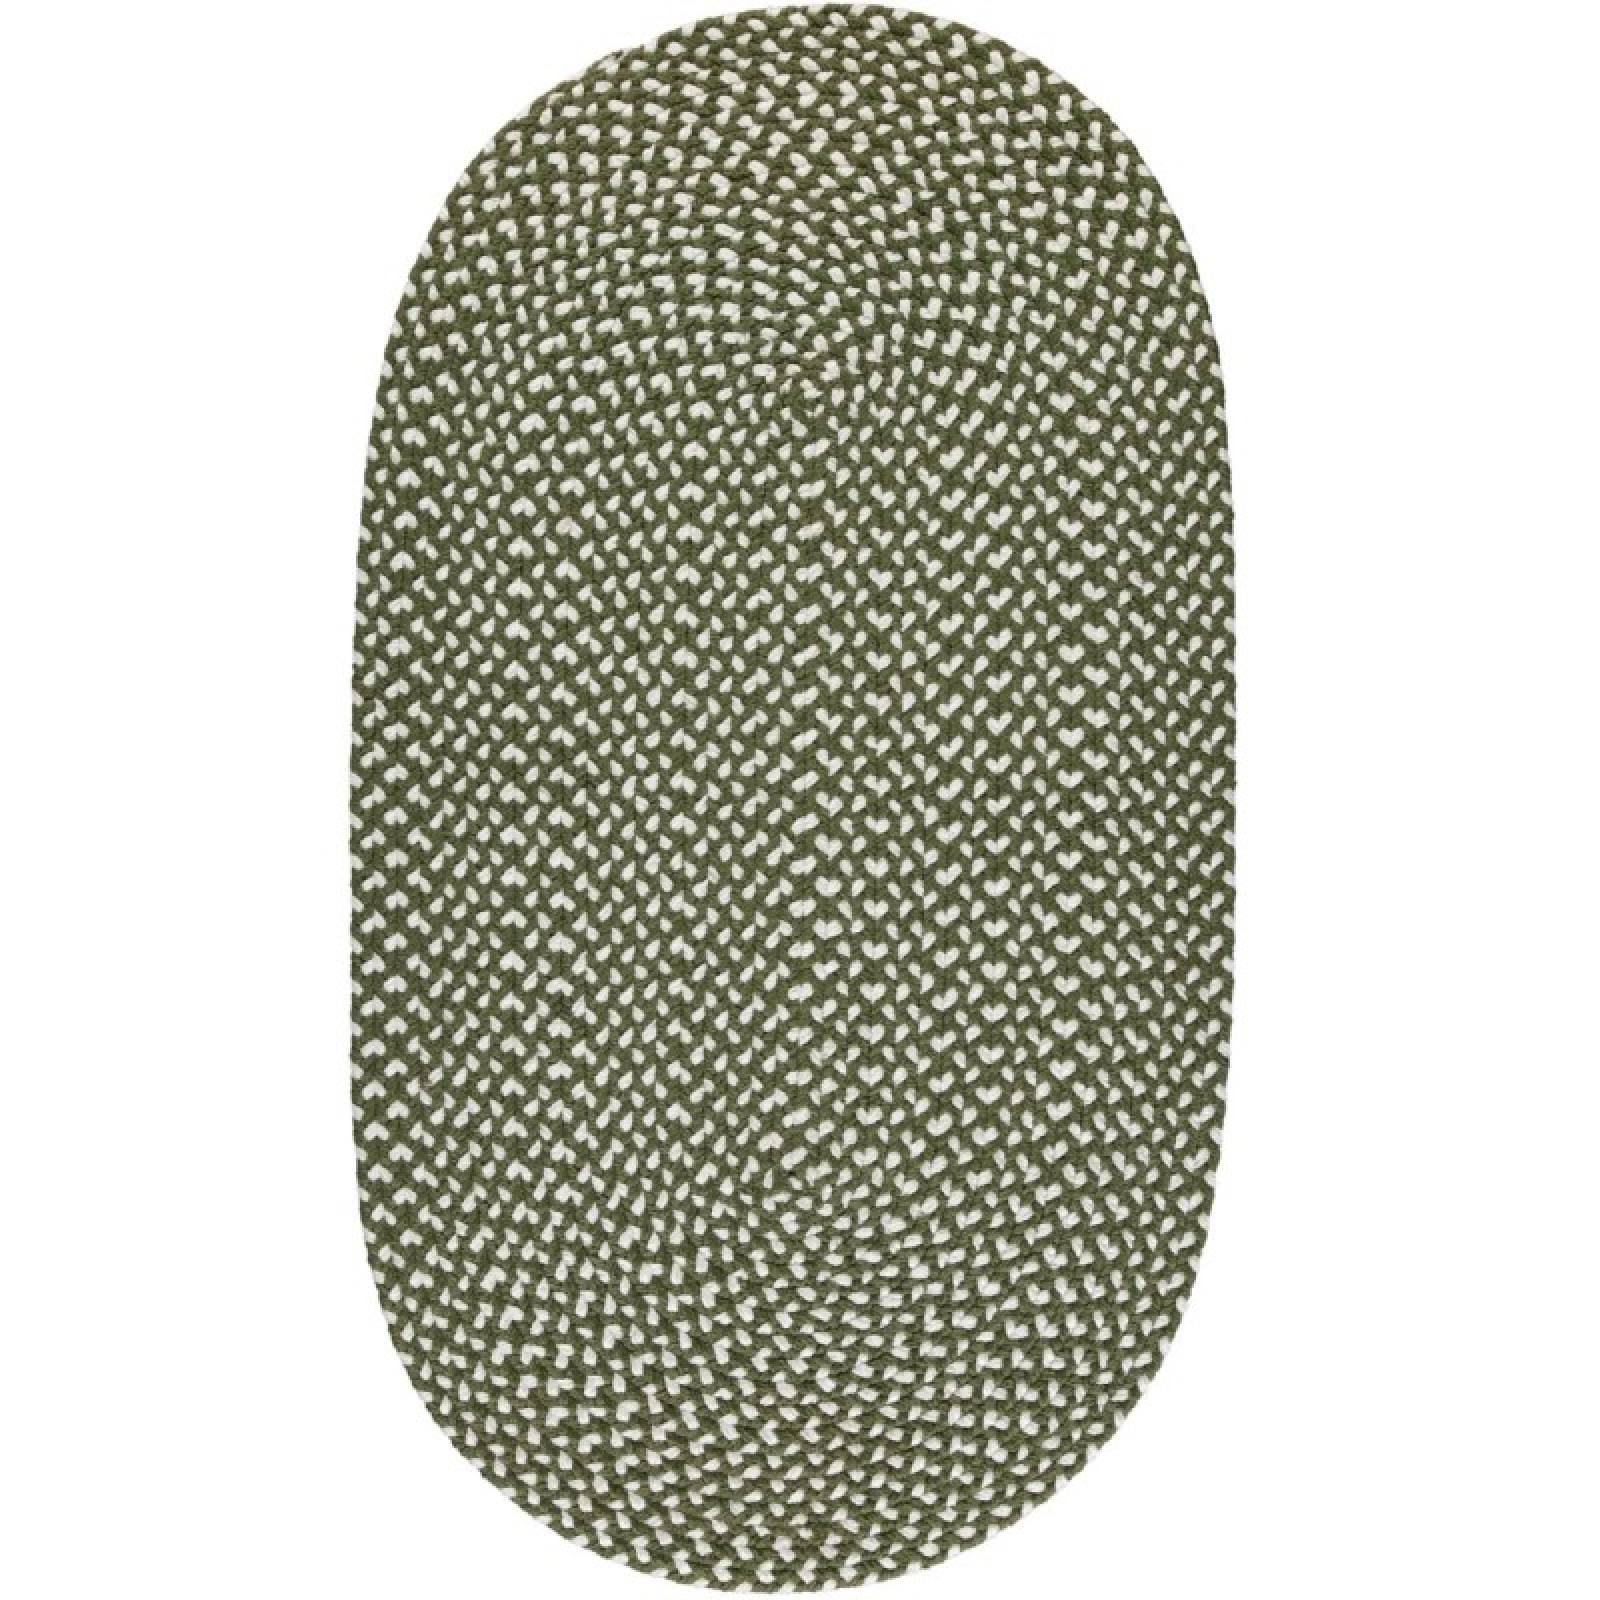 Olive Oval Braided Rug Recycled Plastic 69x122cm